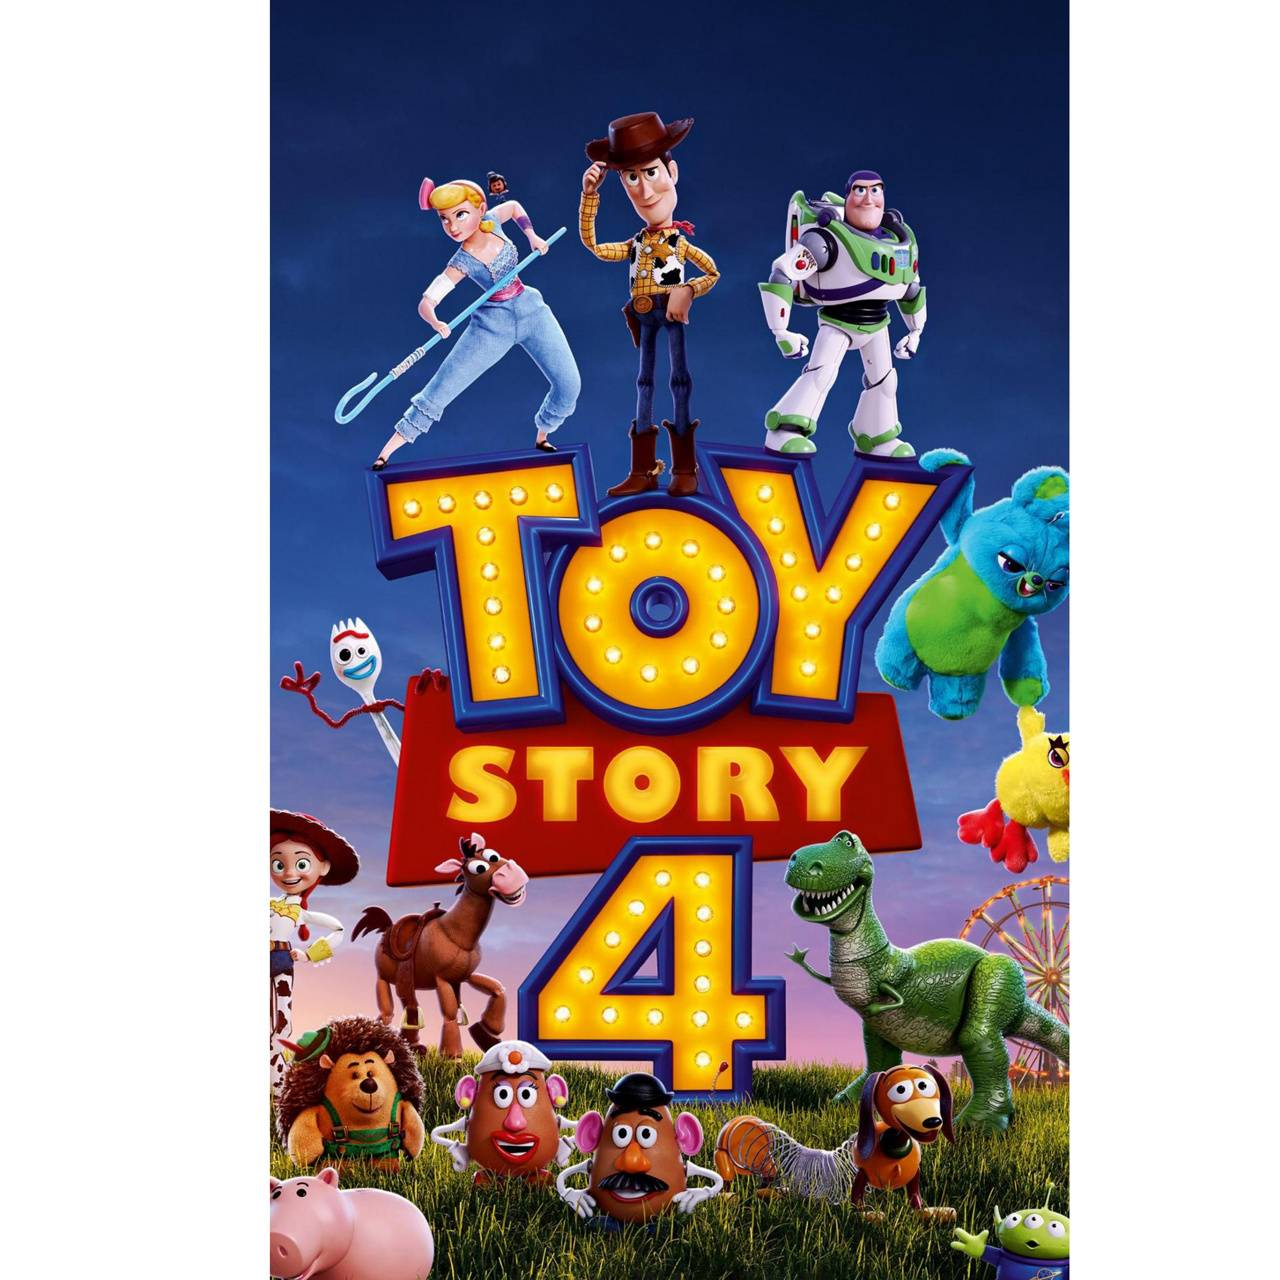 Toy Story 4 4k Wallpaper By Djweeman6 96 Free On Zedge